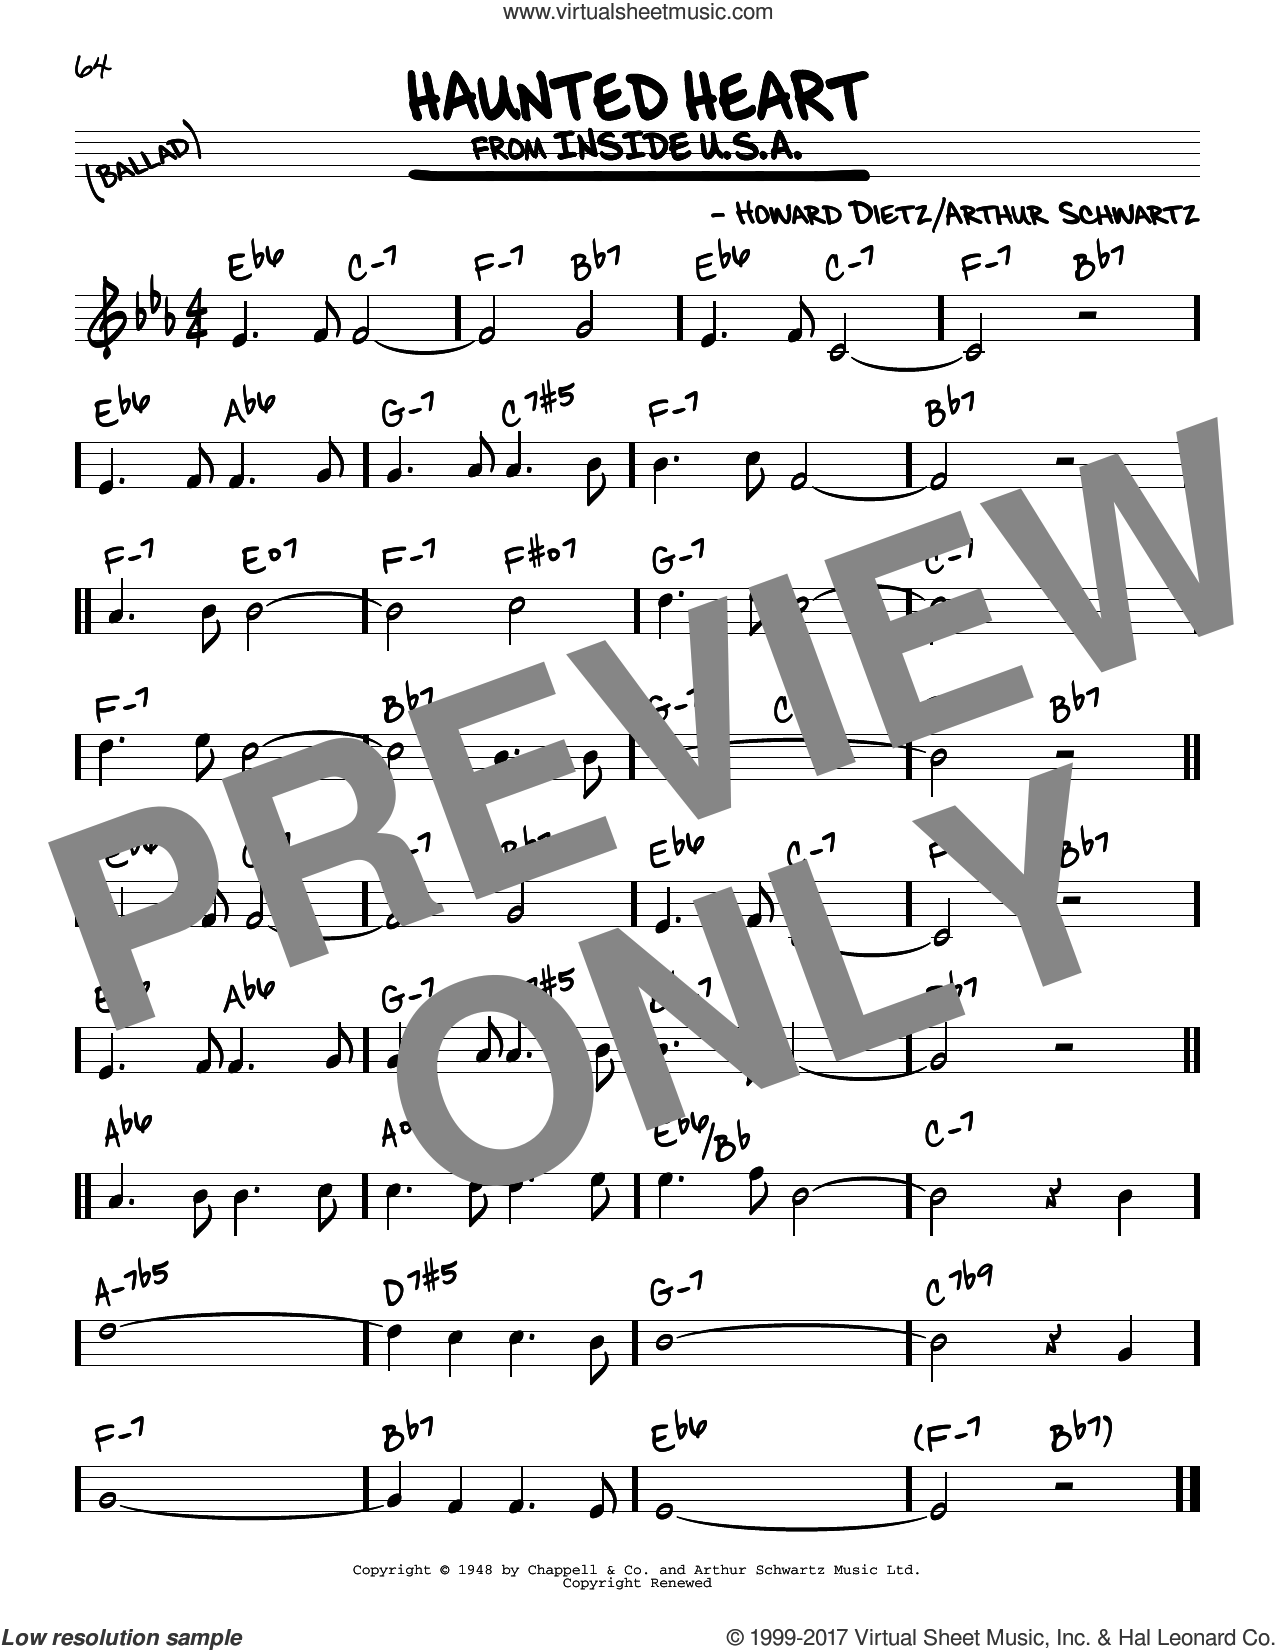 Haunted Heart sheet music for voice and other instruments (real book) by Arthur Schwartz and Howard Dietz, intermediate skill level